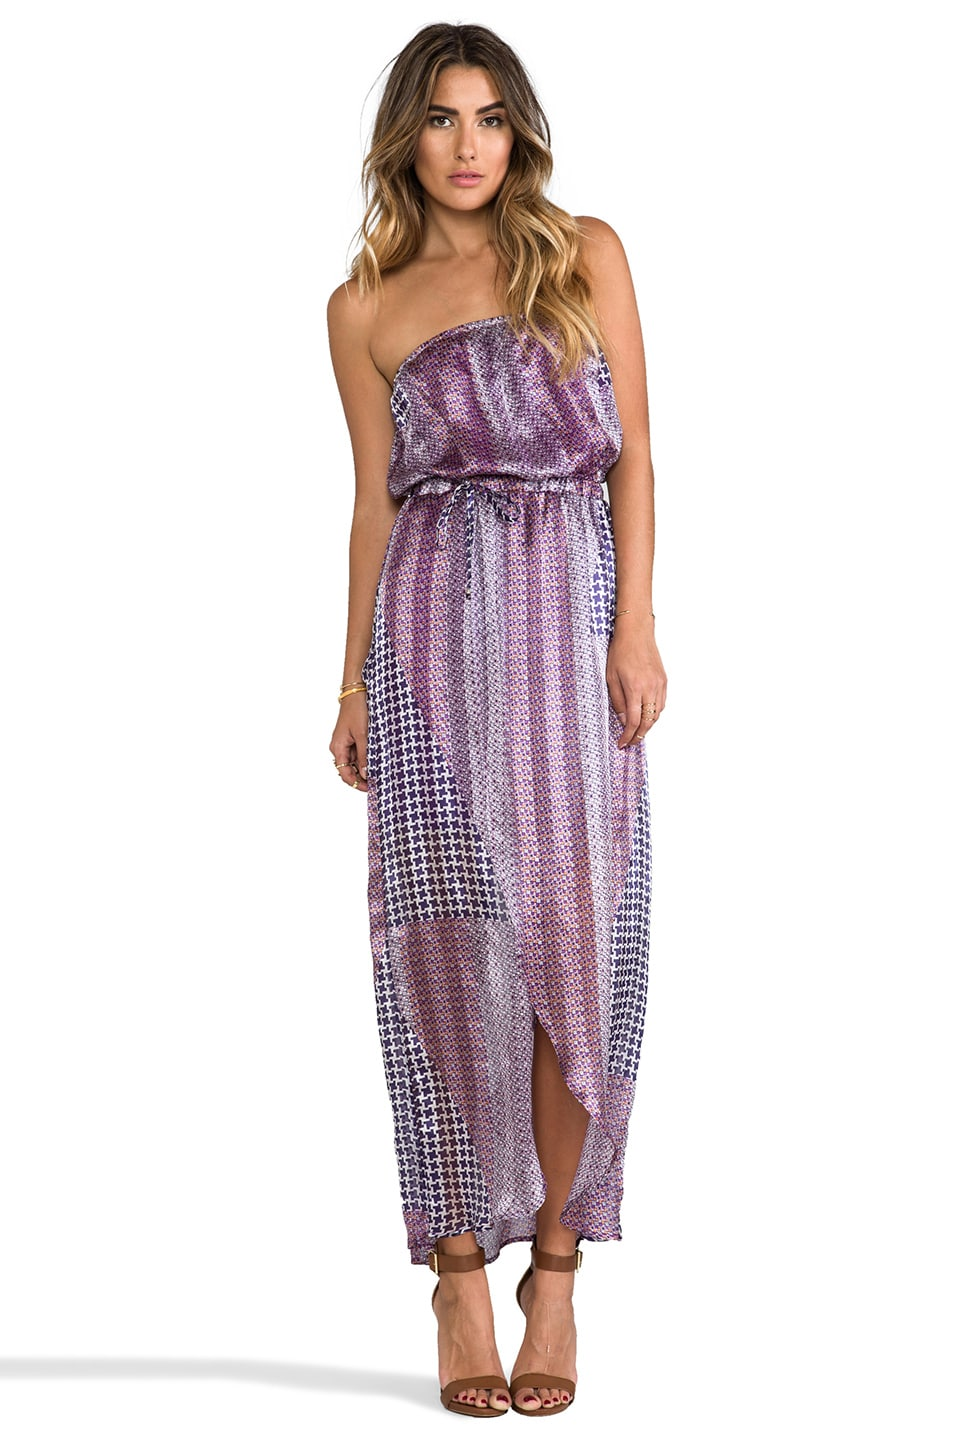 Gypsy 05 Strapless Maxi Dress in Grape